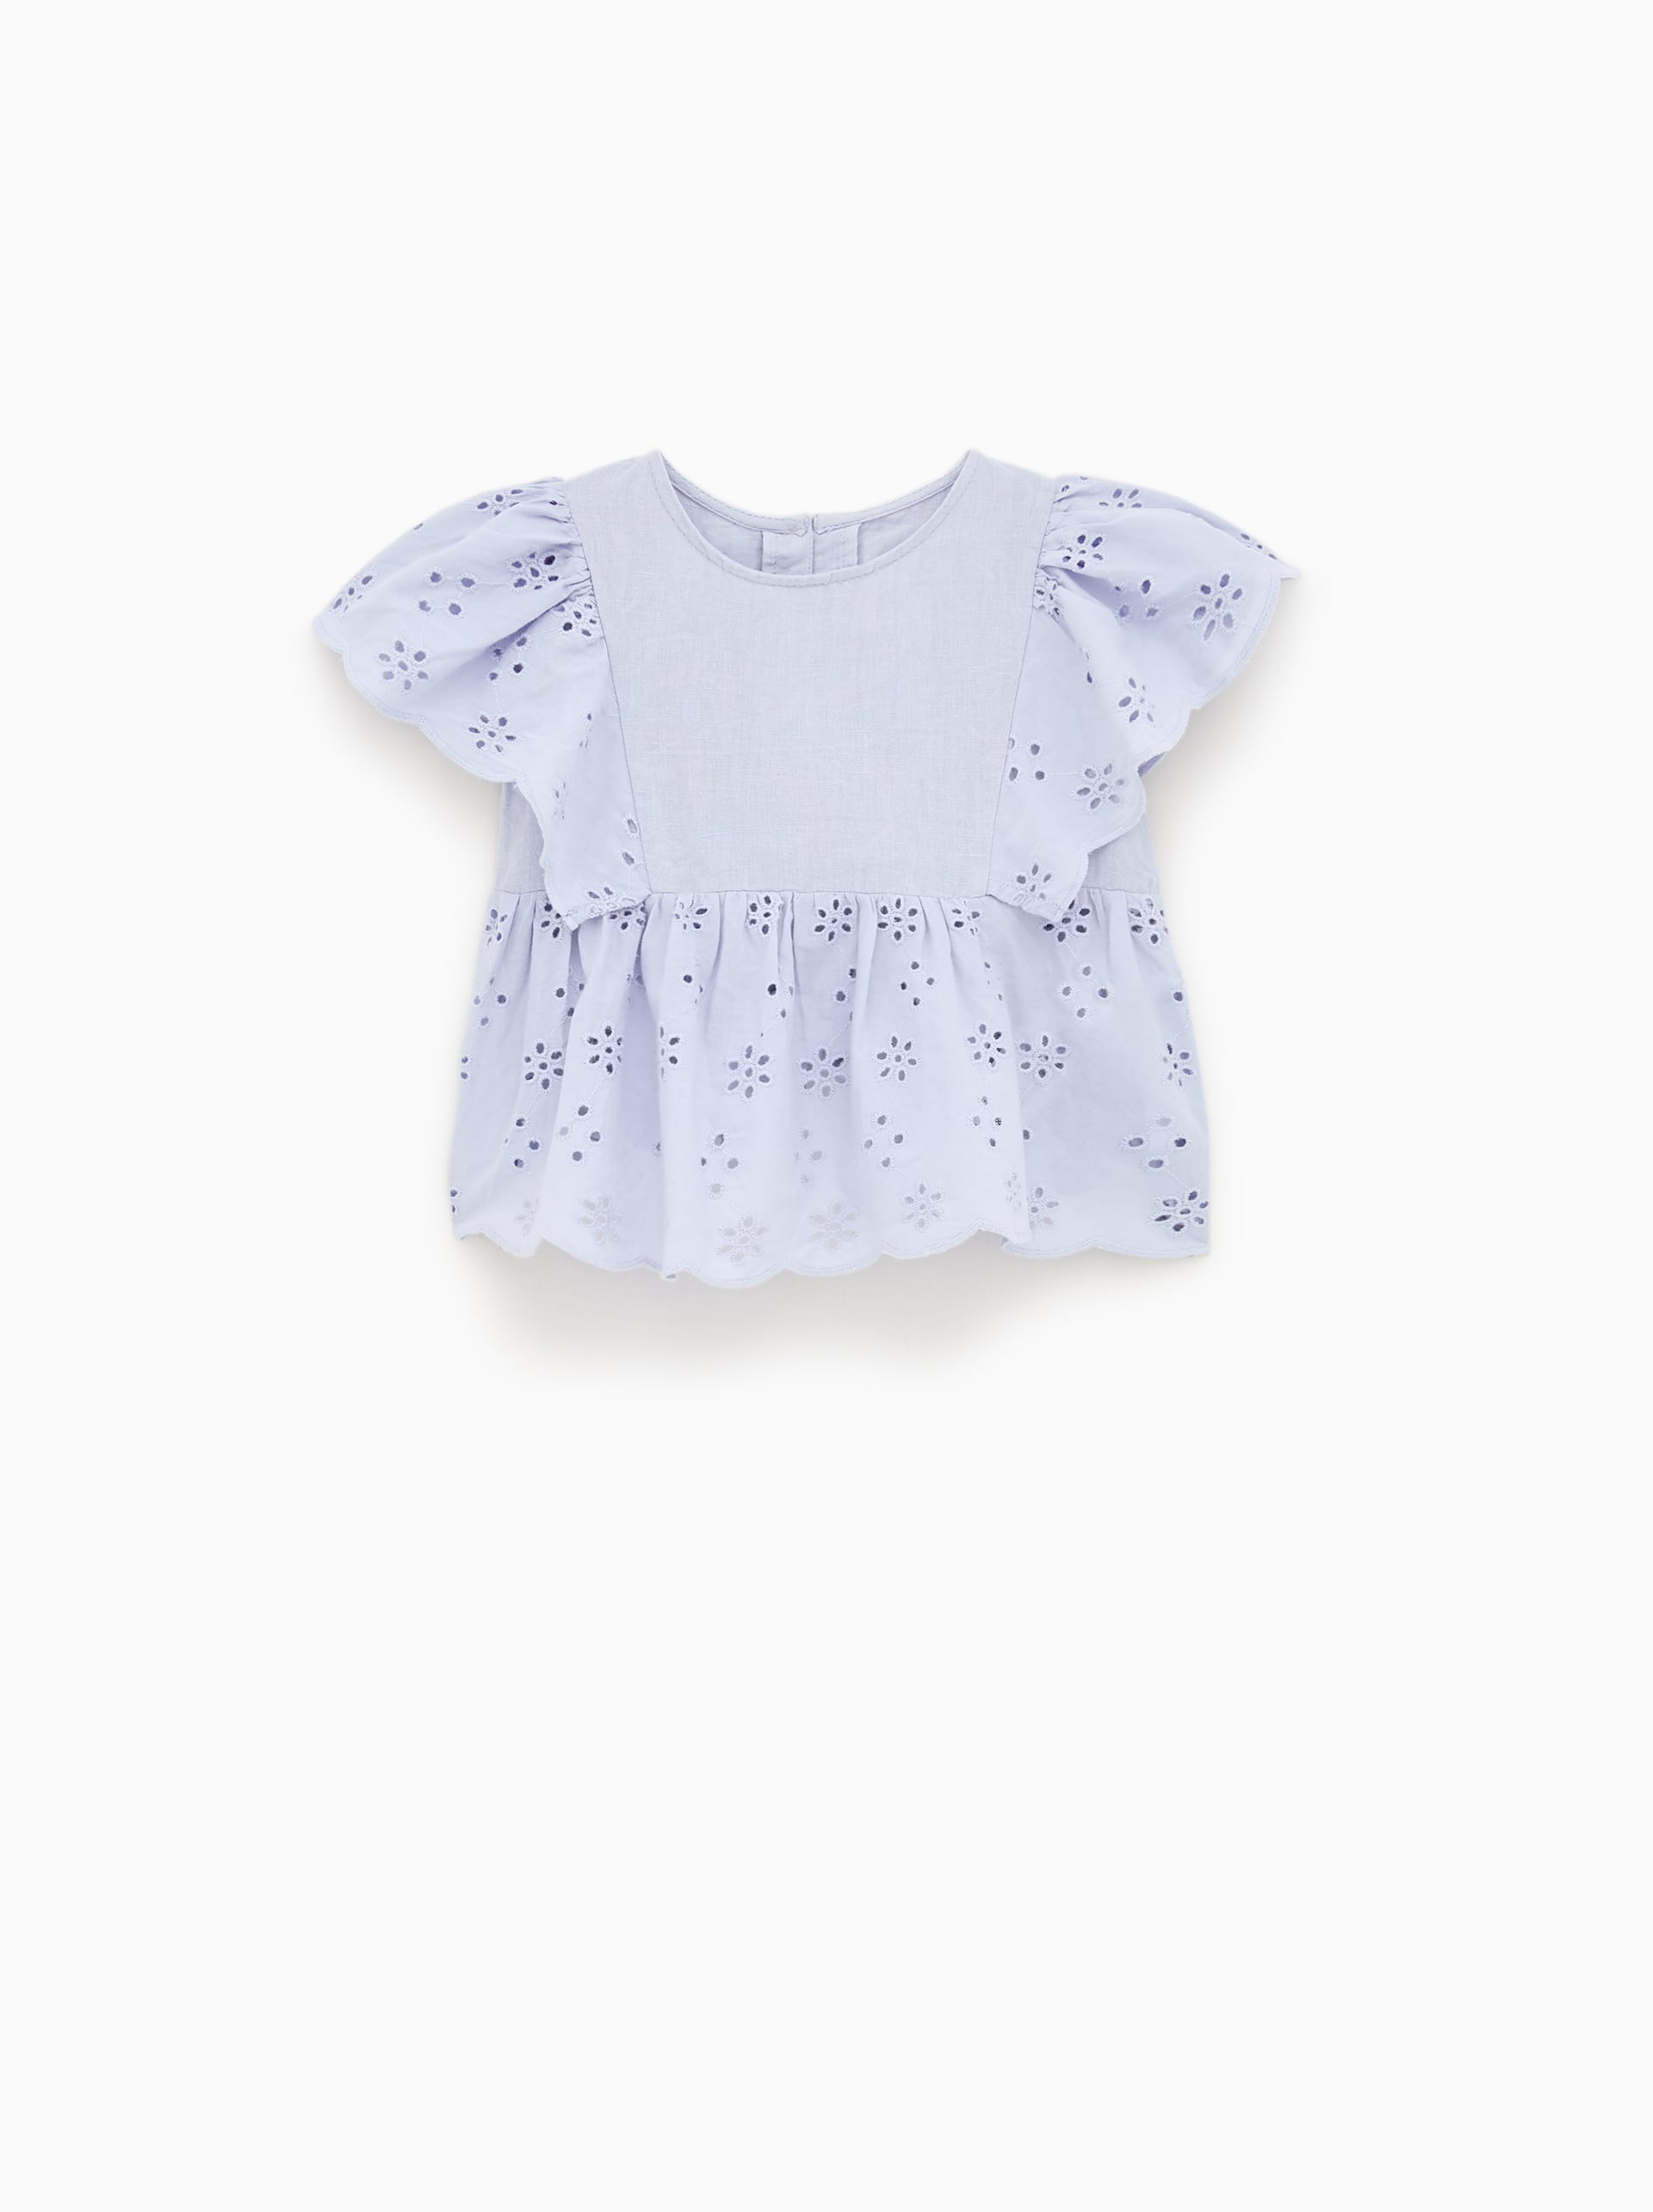 c73b0c32 BLOUSE WITH SWISS EMBROIDERY - SPECIAL OCCASION-SHOP BY COLLECTION ...